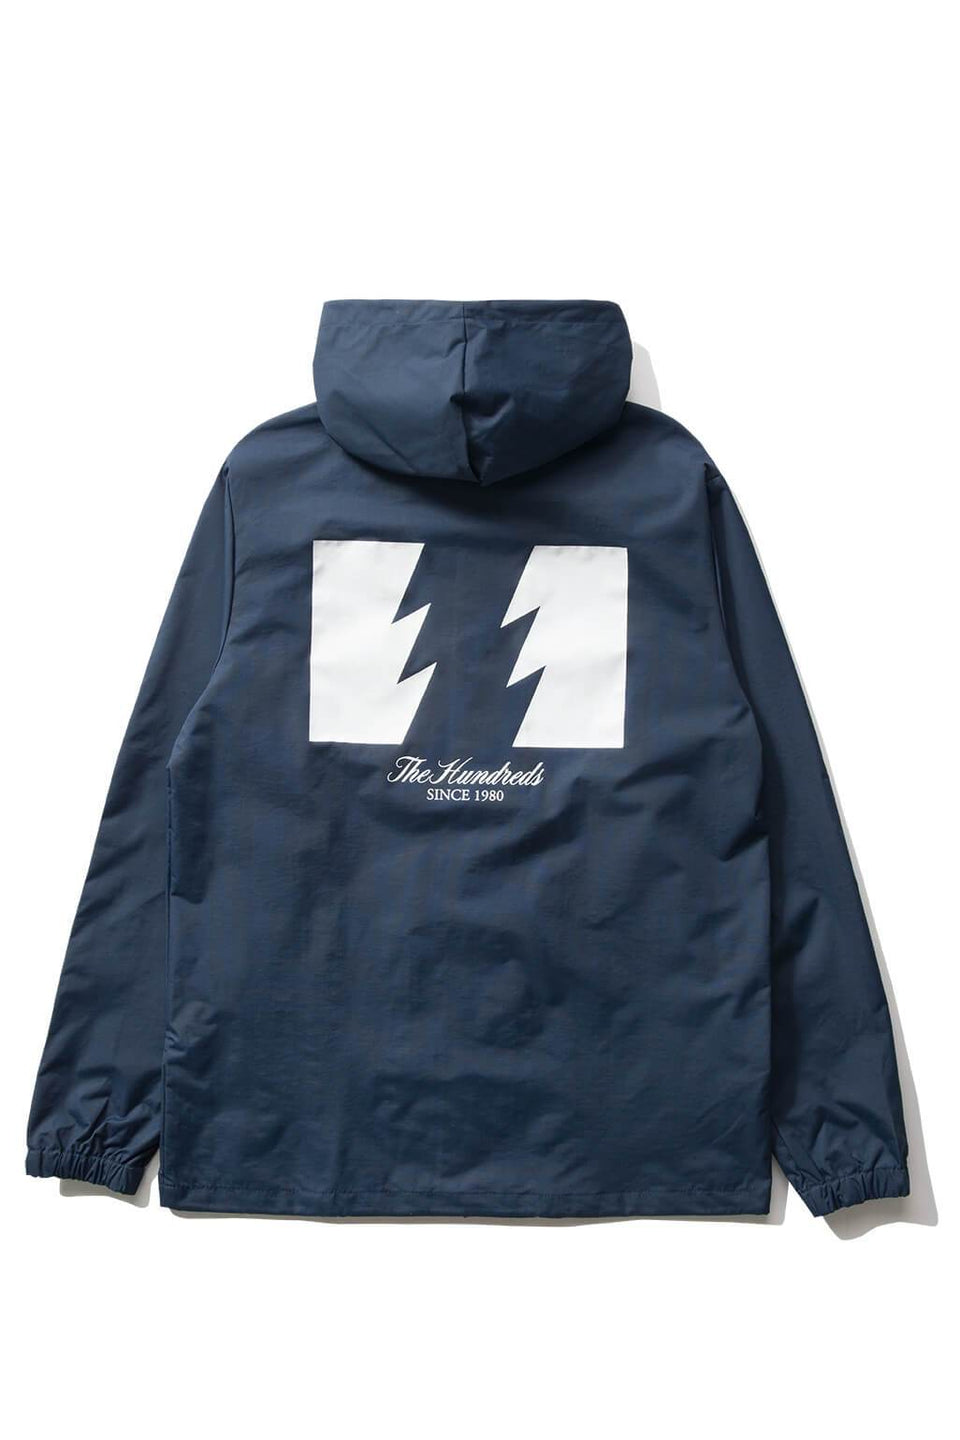 The Hundreds Forever Slant Hooded Coach's Jacket Navy Back